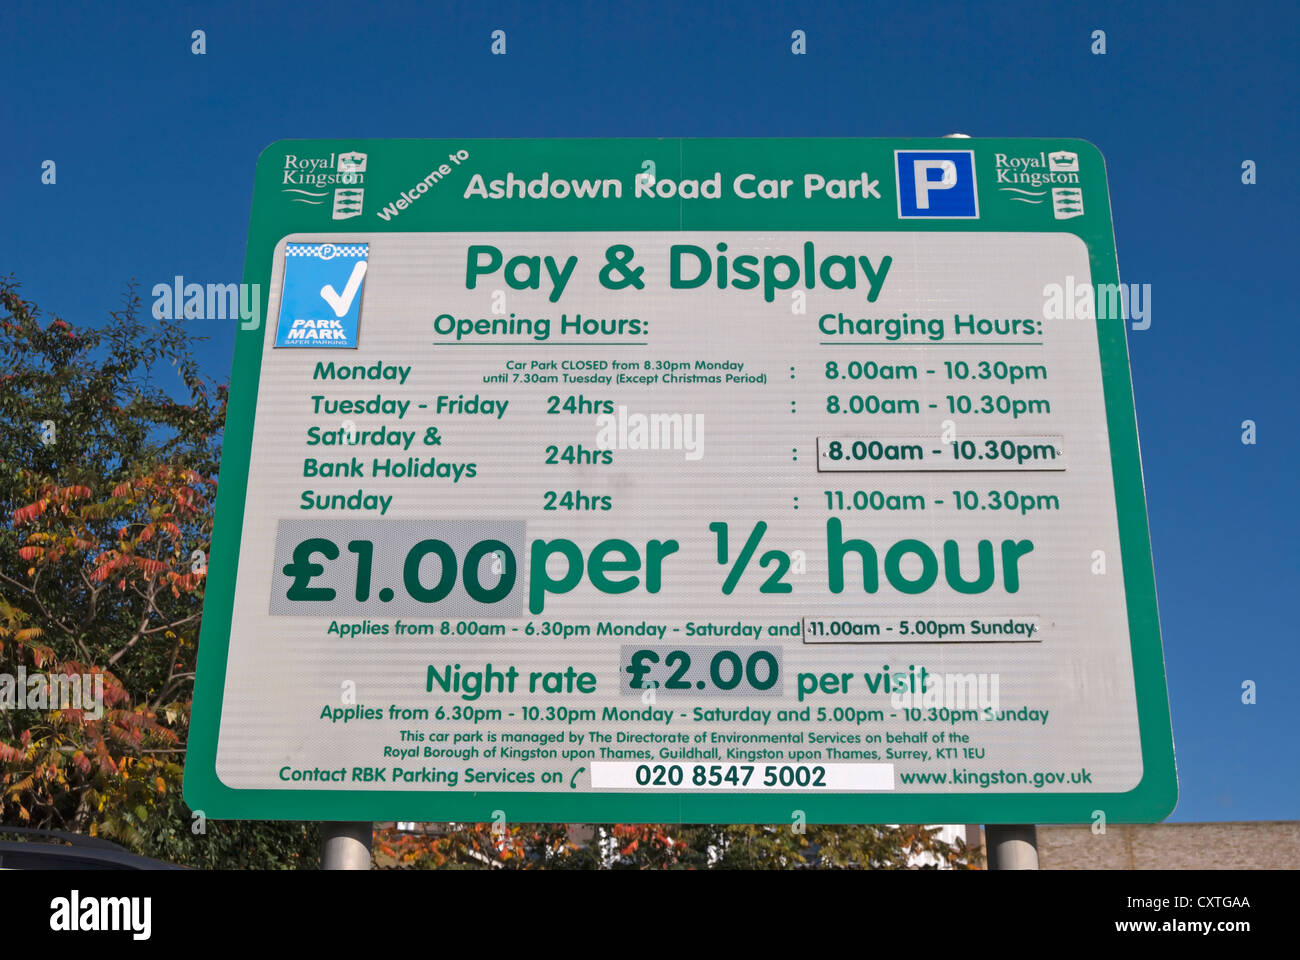 pay and display car park sign, kingston upon thames, surrey, england - Stock Image